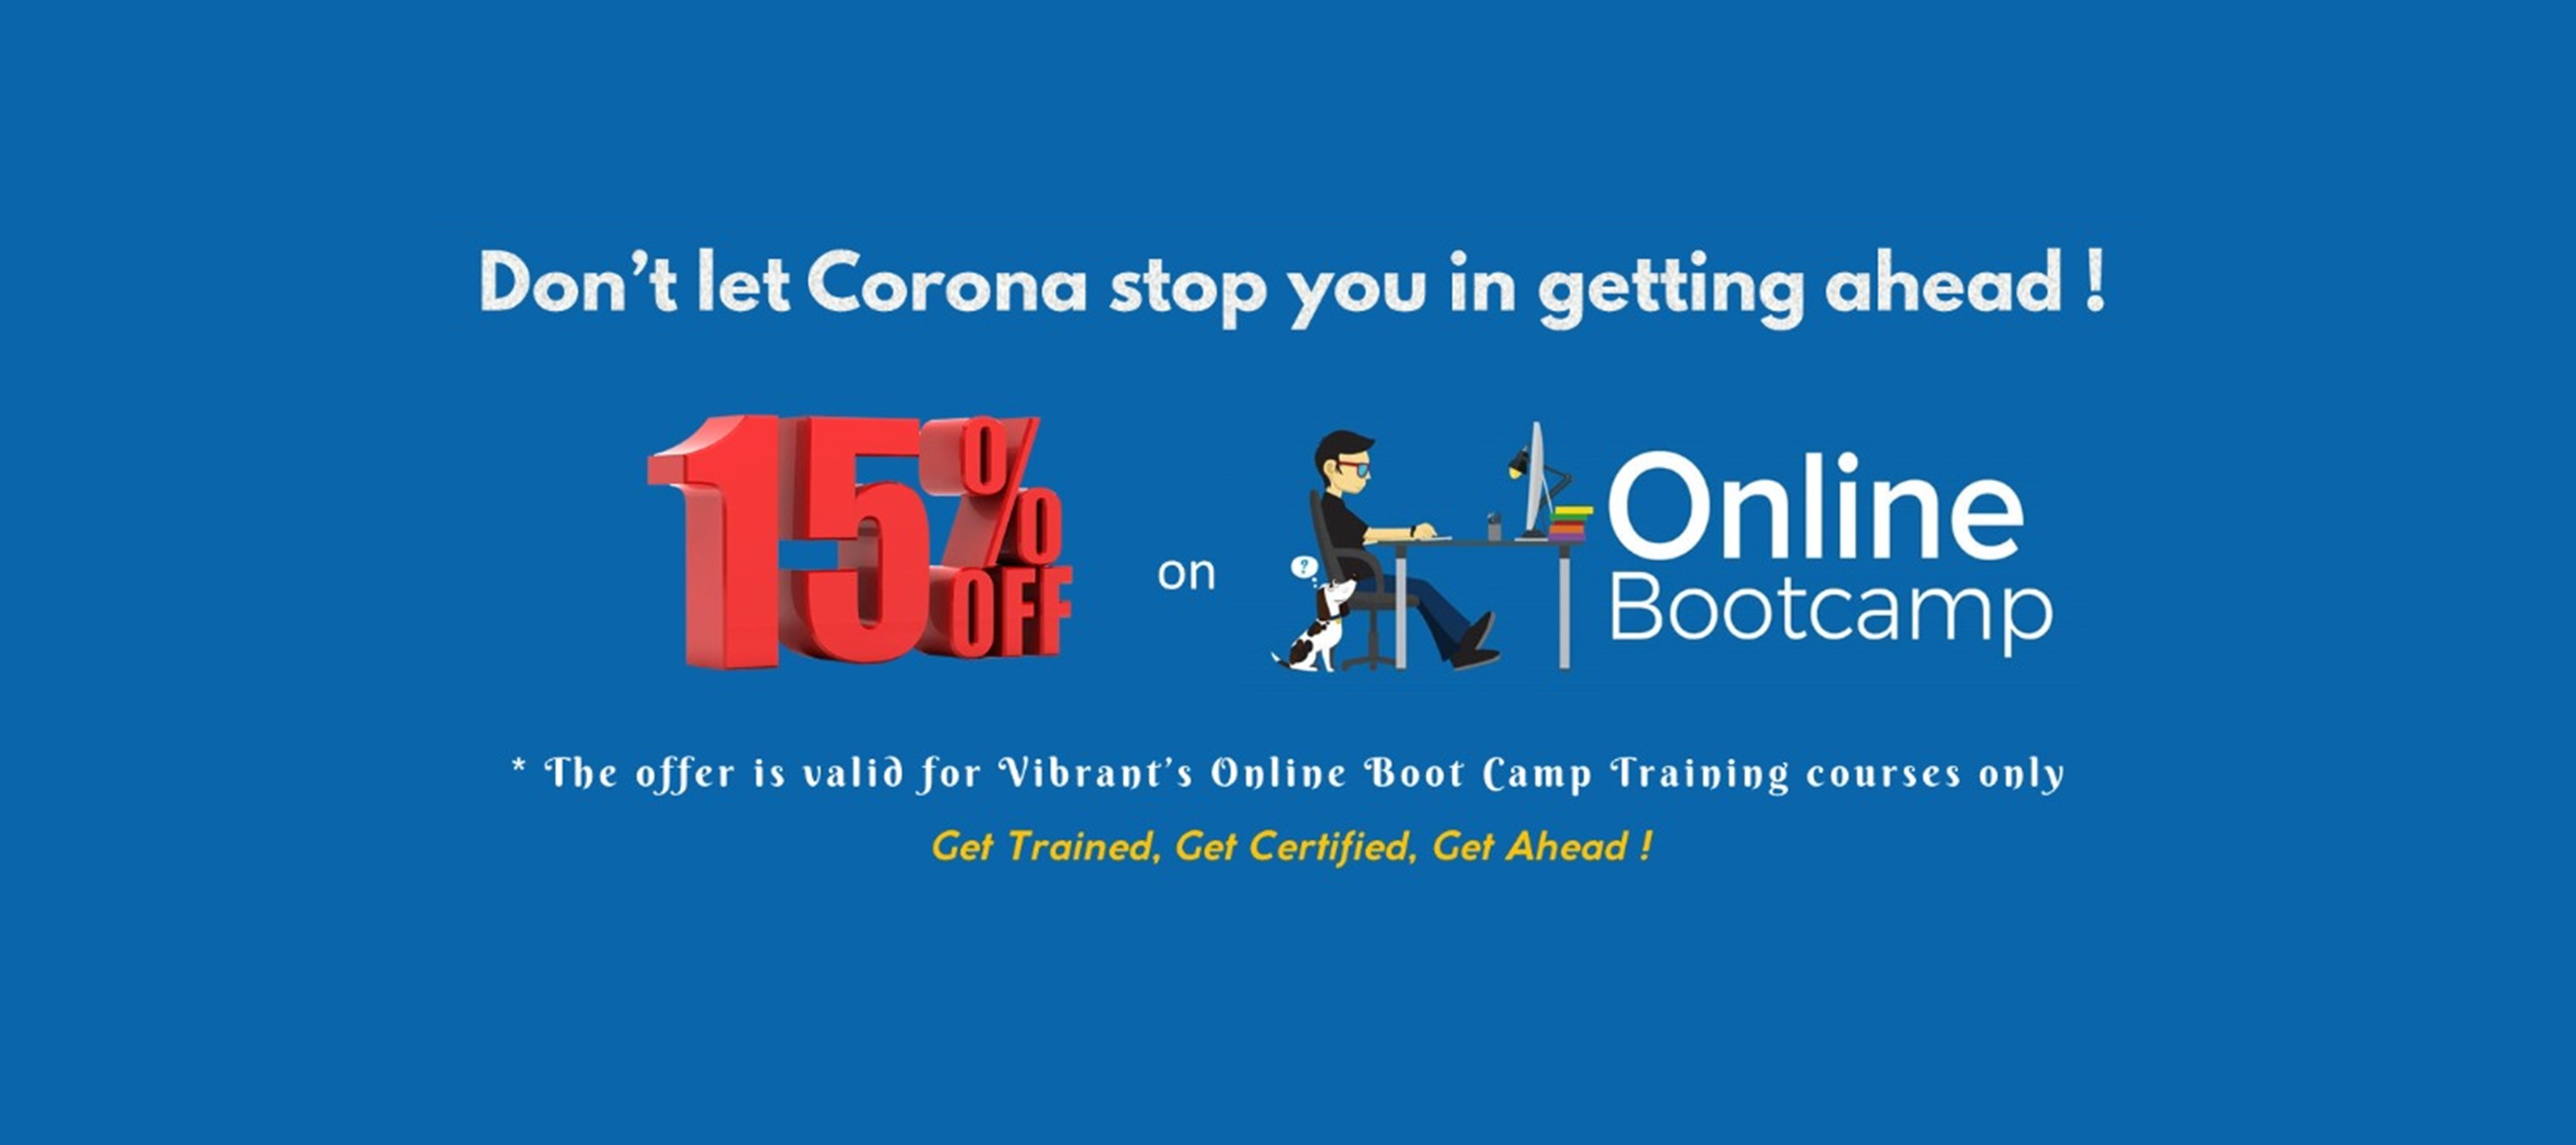 MCSE Boot camp, MCSE Azur Certification, MCSE 2016 training, MCSE Certification boot camp, MCSE Boot camp Training, MCSE Certifiation boot camp training, MCSE bootcamps, MCSE Azur Admin Boot camp, MCSE Cloud 2016 certification, MCSE Azure 2016 Training, MCSE 2016 Camp, MCSE upgrade Boot camp, MCSE Upgrade certtification, MCSE upgrade Training, MCSE Boot camp San Fracisco, MCSE boot camp San Mateo, MCSE Boot camp Maryland, MCSE bootcamp training, CCNA Boot camp, CCNA Certifiation, CCNA Training, CCNA Certfication Boot camp, CCNA Boot camp training, CCNA Certification boot camp training, MCSE CCNA combo Boot camp, MCSE CCNA Camp, MCSE CCNA Certification training camp, CCNAX Boot camp, CCNAX Certification, CCNAX training, CCNAX boot camp training, CCNAX Certification Training, CCNAX Certification boot camp training